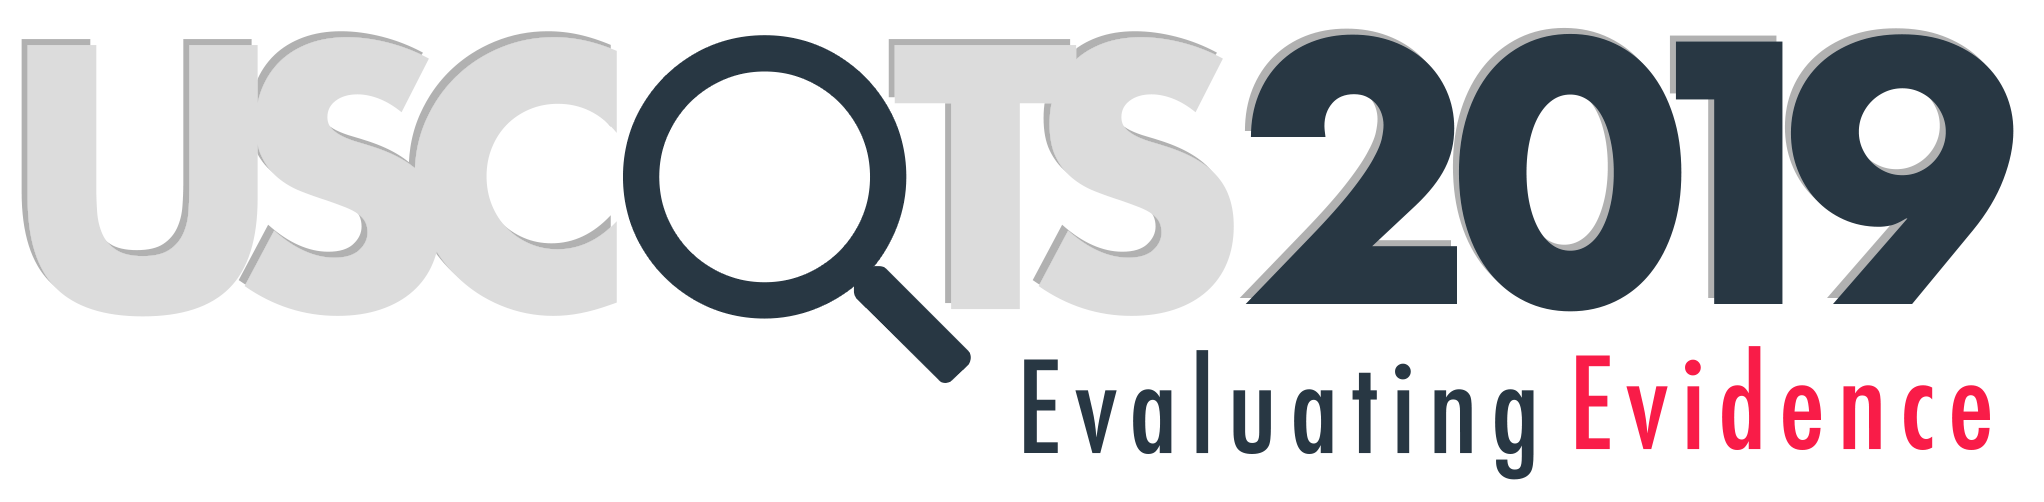 USCOTS '19 Evaluating Evidence